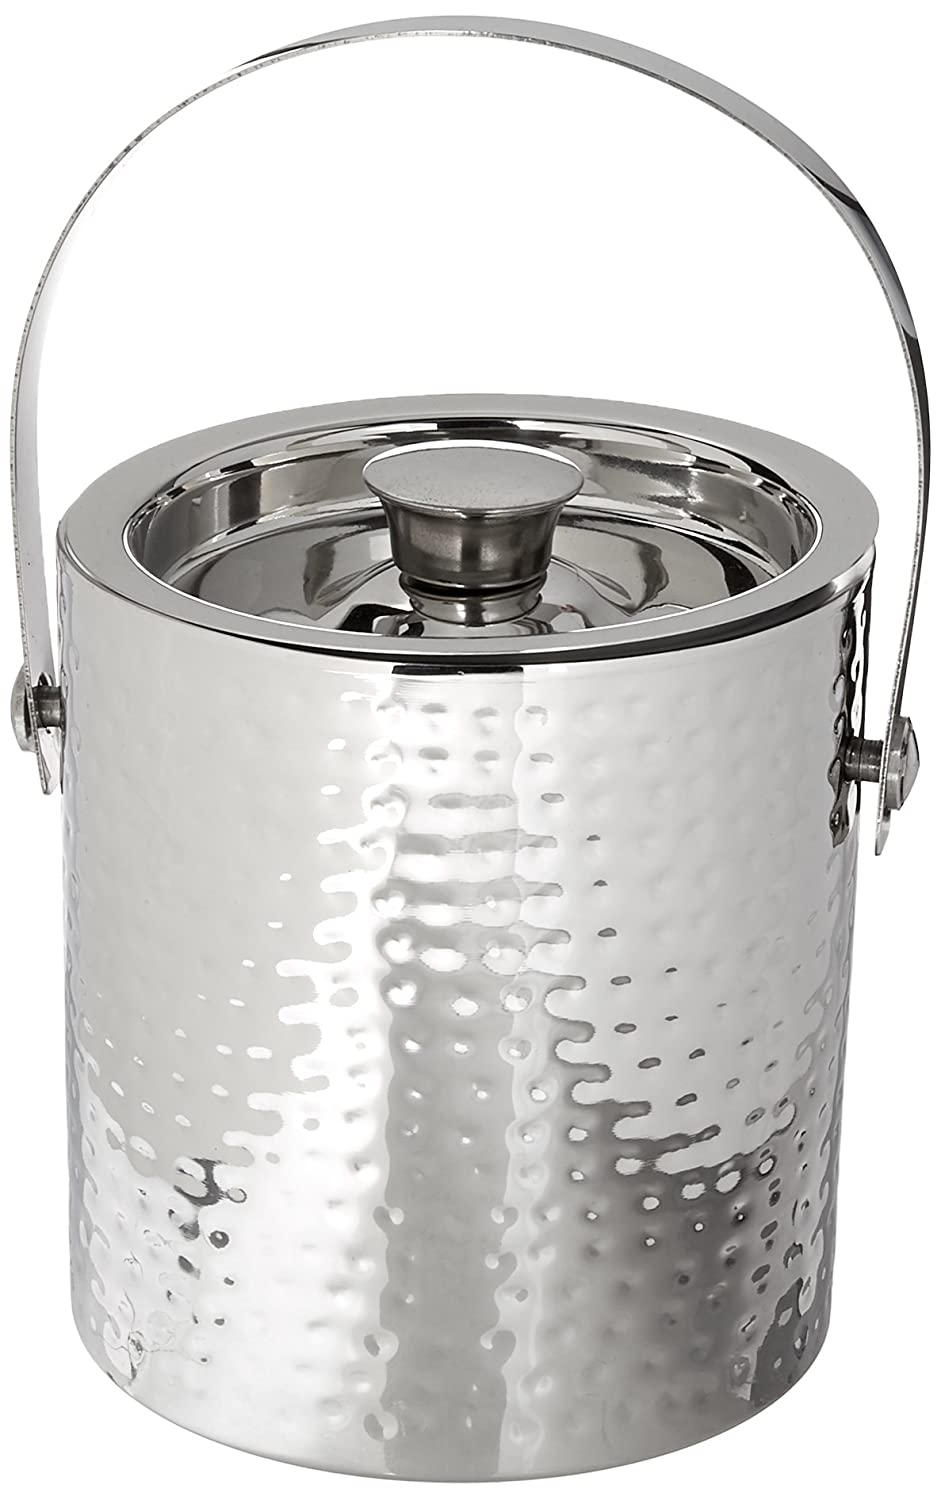 Elegance Hammered 6-Inch Stainless Steel Ice Bucket With Tongs Leeber Limited USA 72607